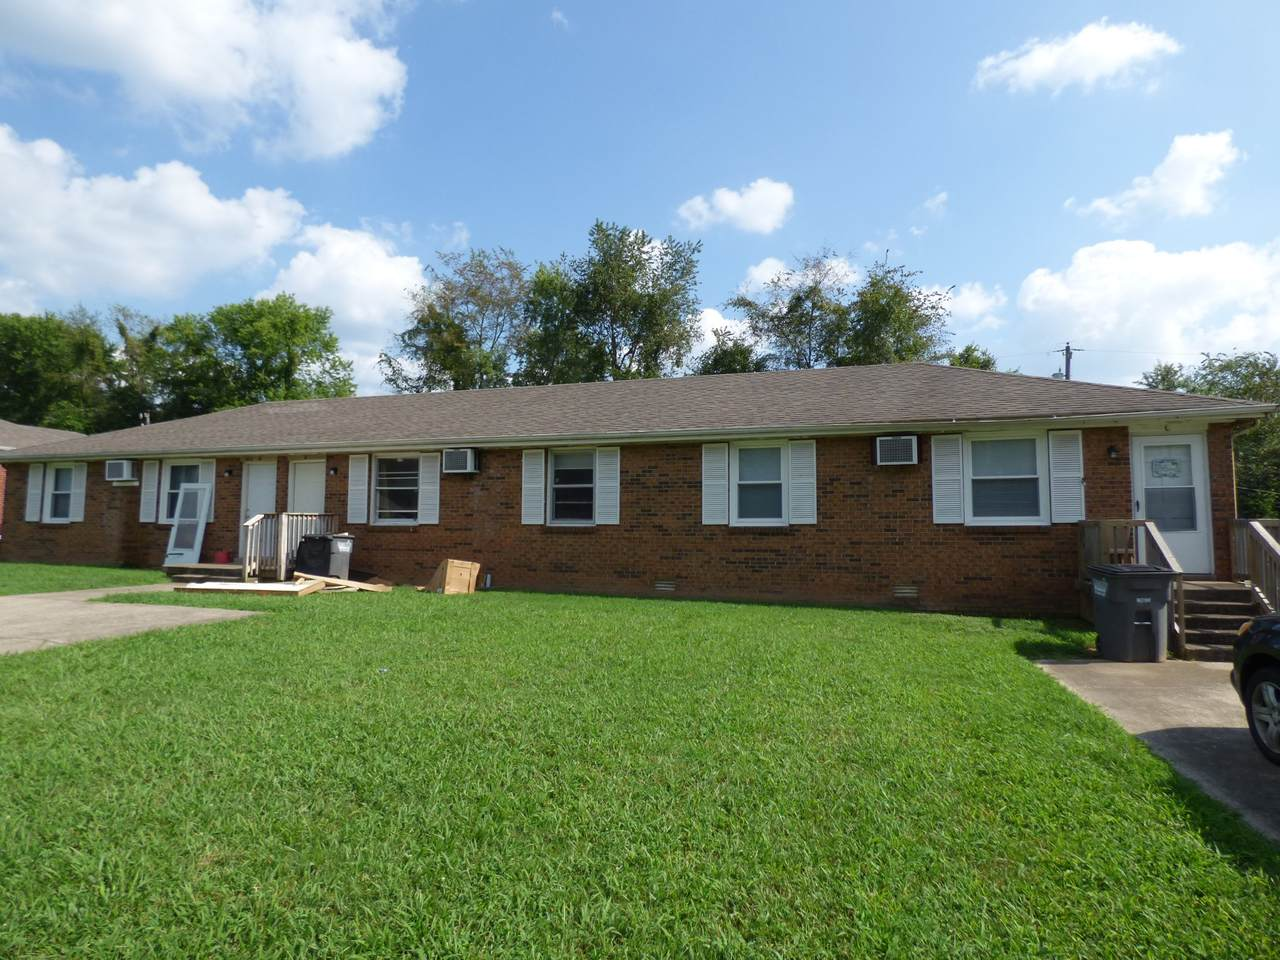 106 Tandy Dr - Photo 1